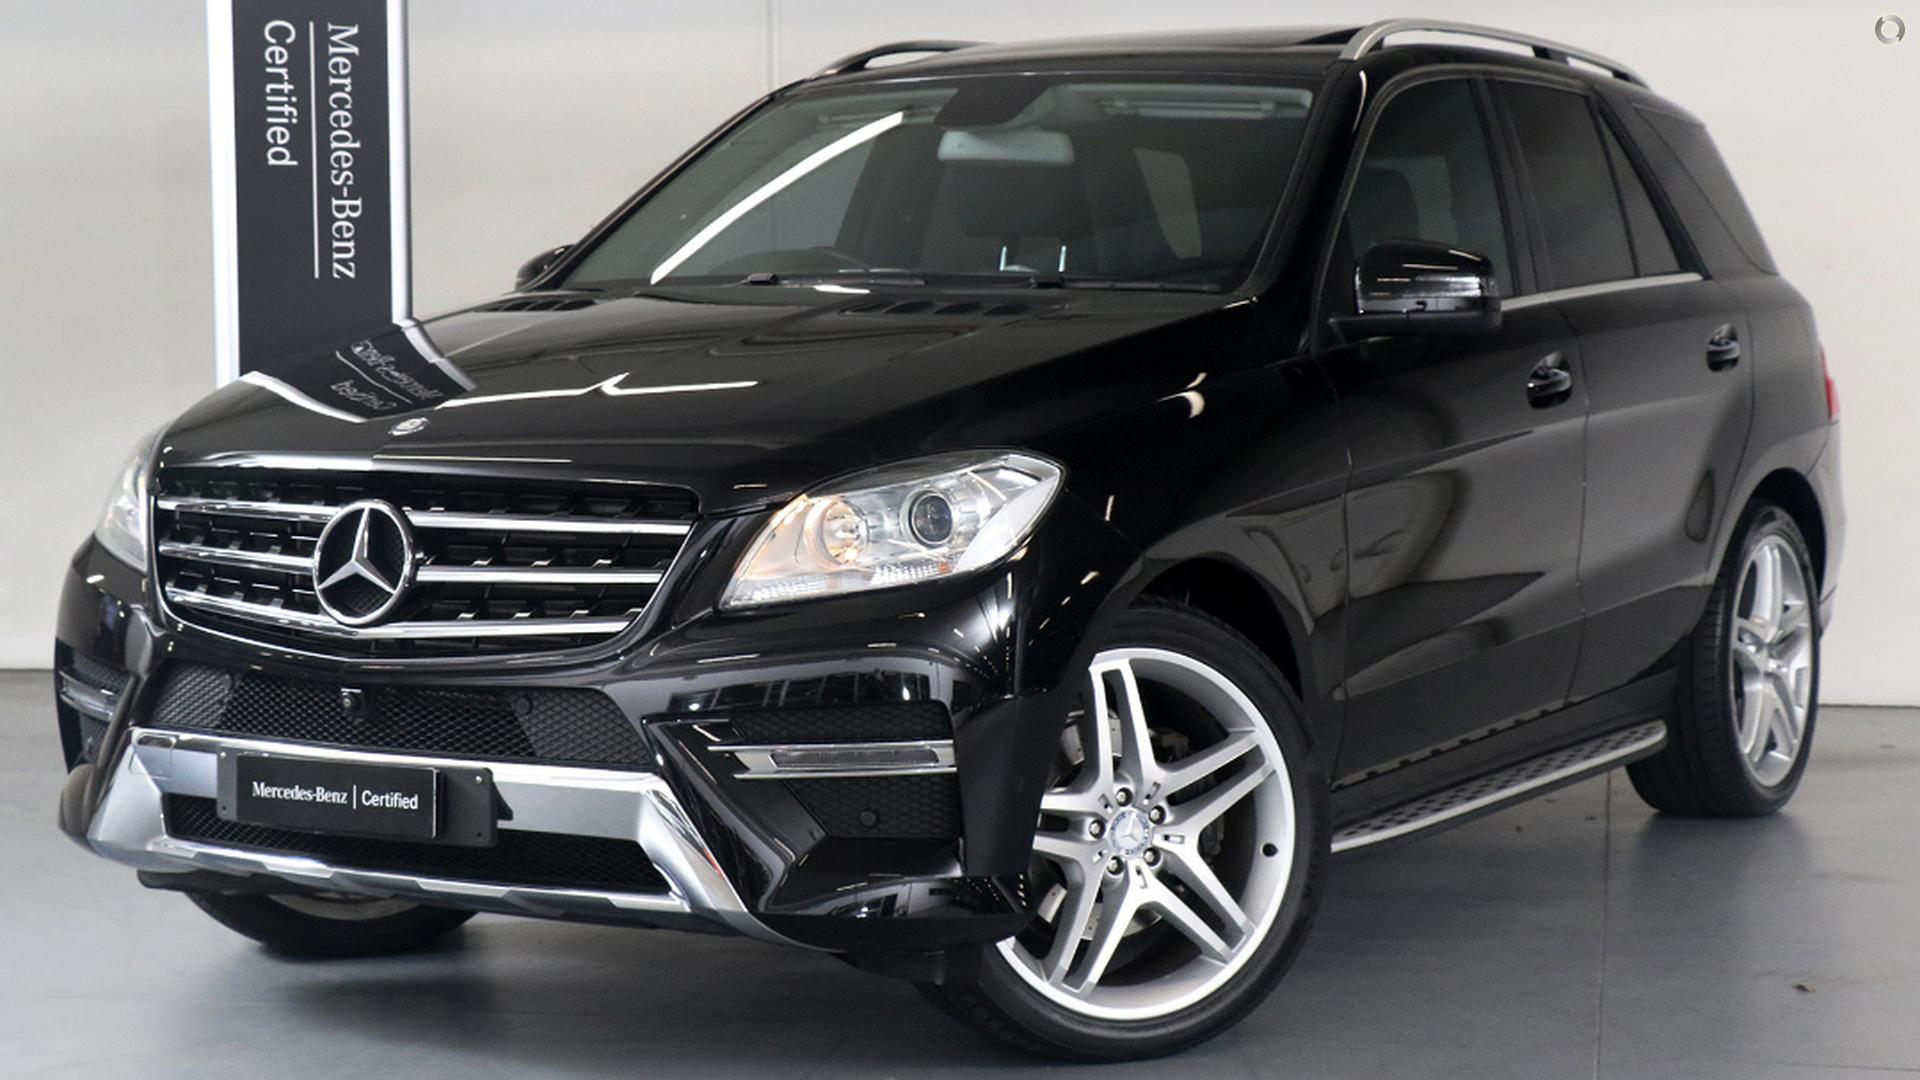 2013 Mercedes-Benz ML 250 Wagon